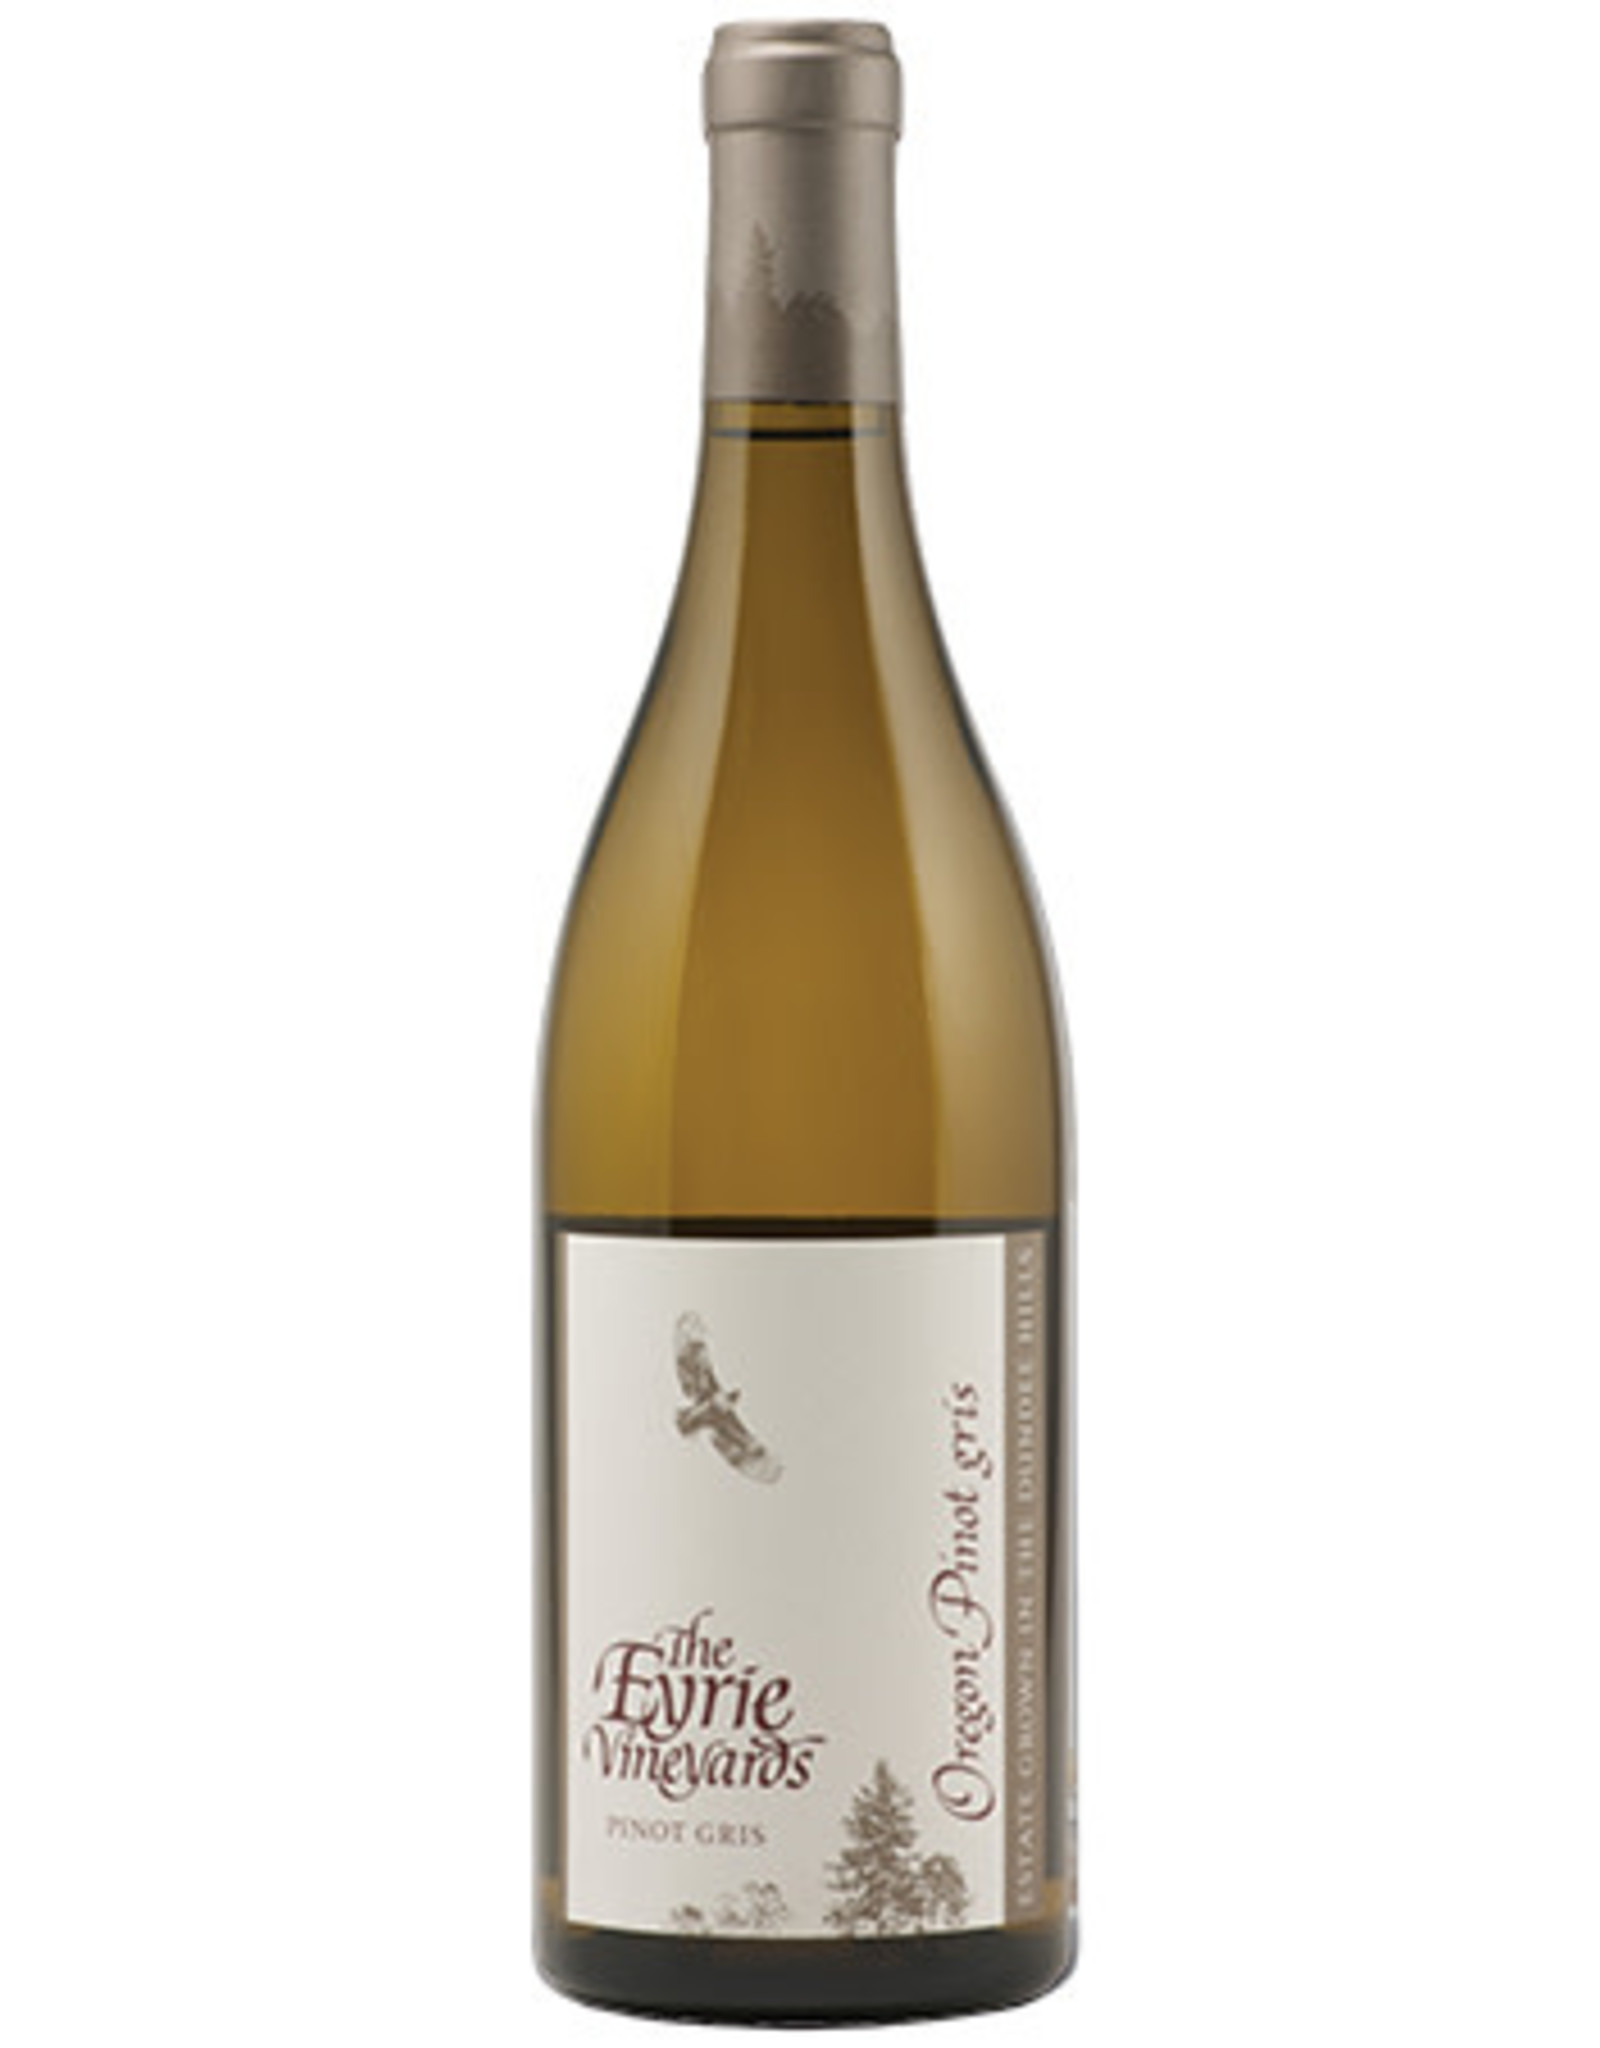 Eyrie Pinot Gris 2018